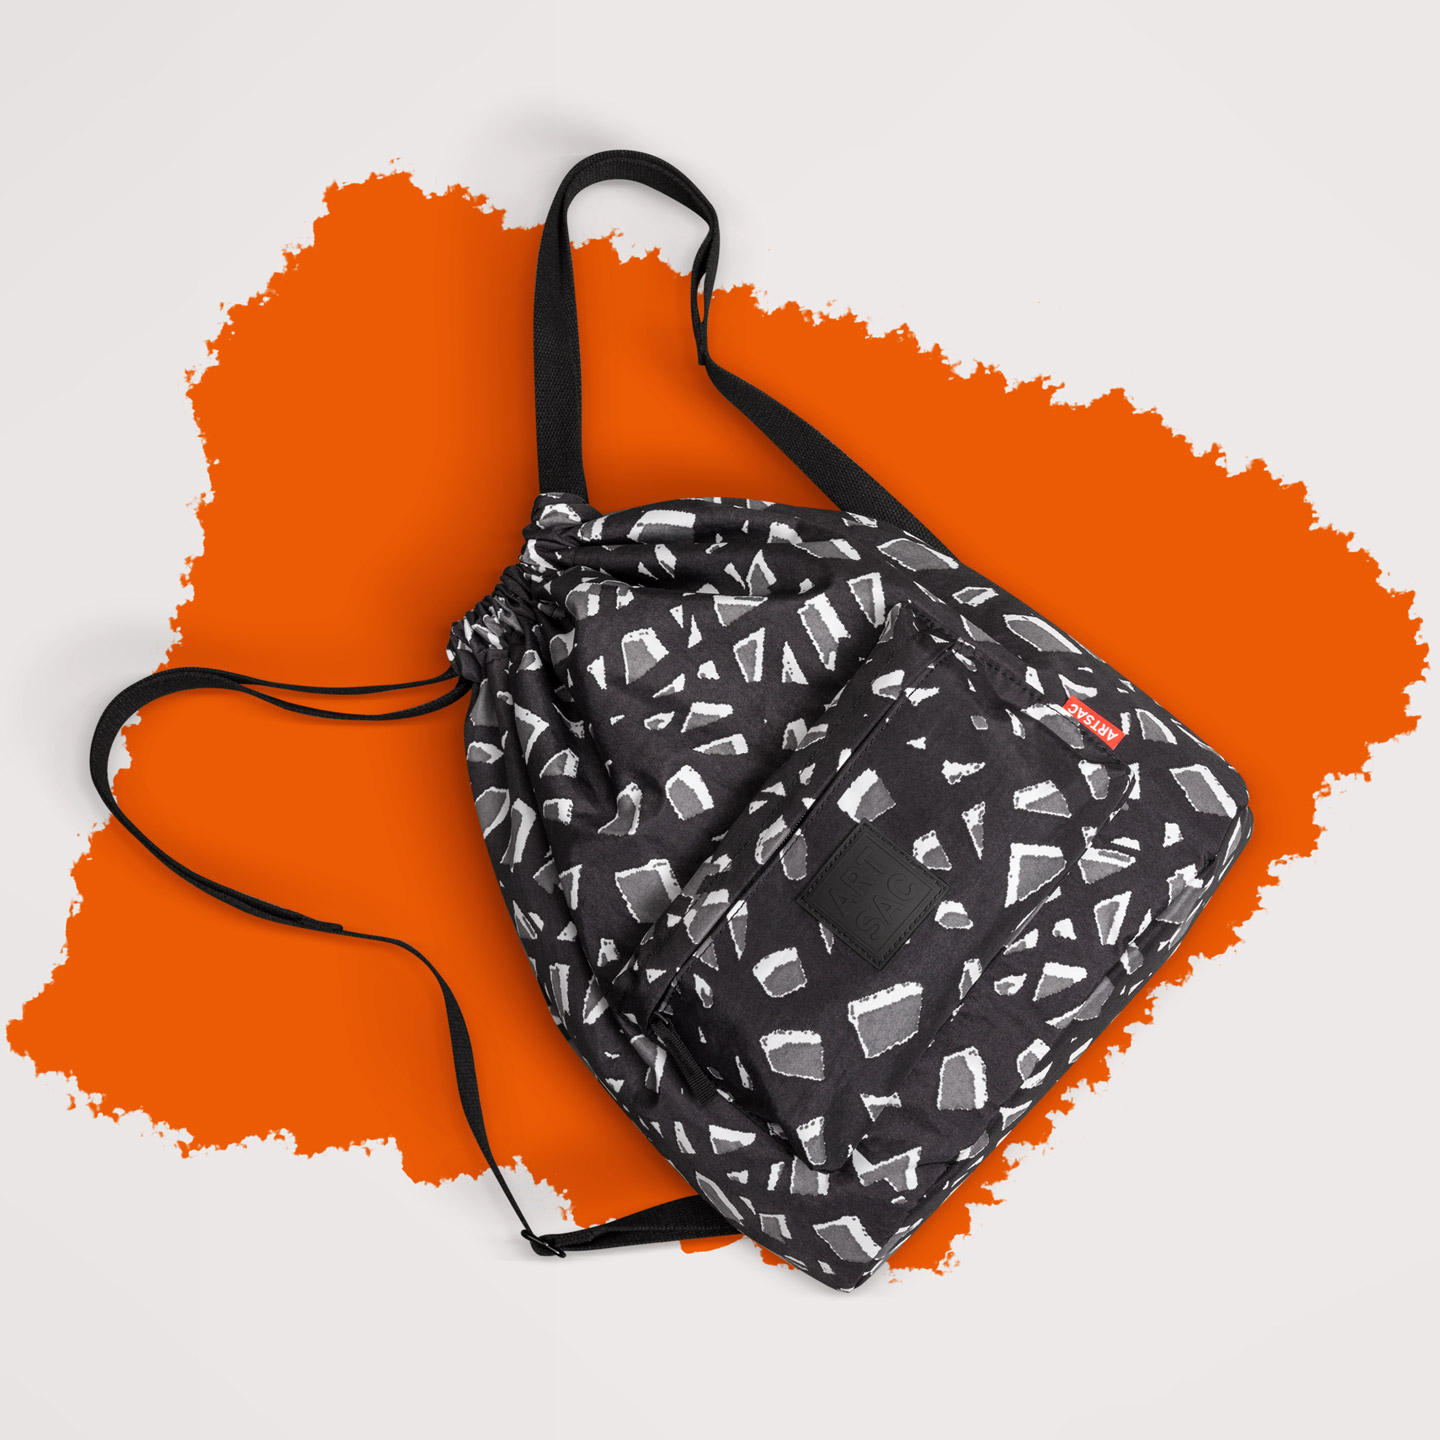 Artsac - The Number 1 Everyday Bag